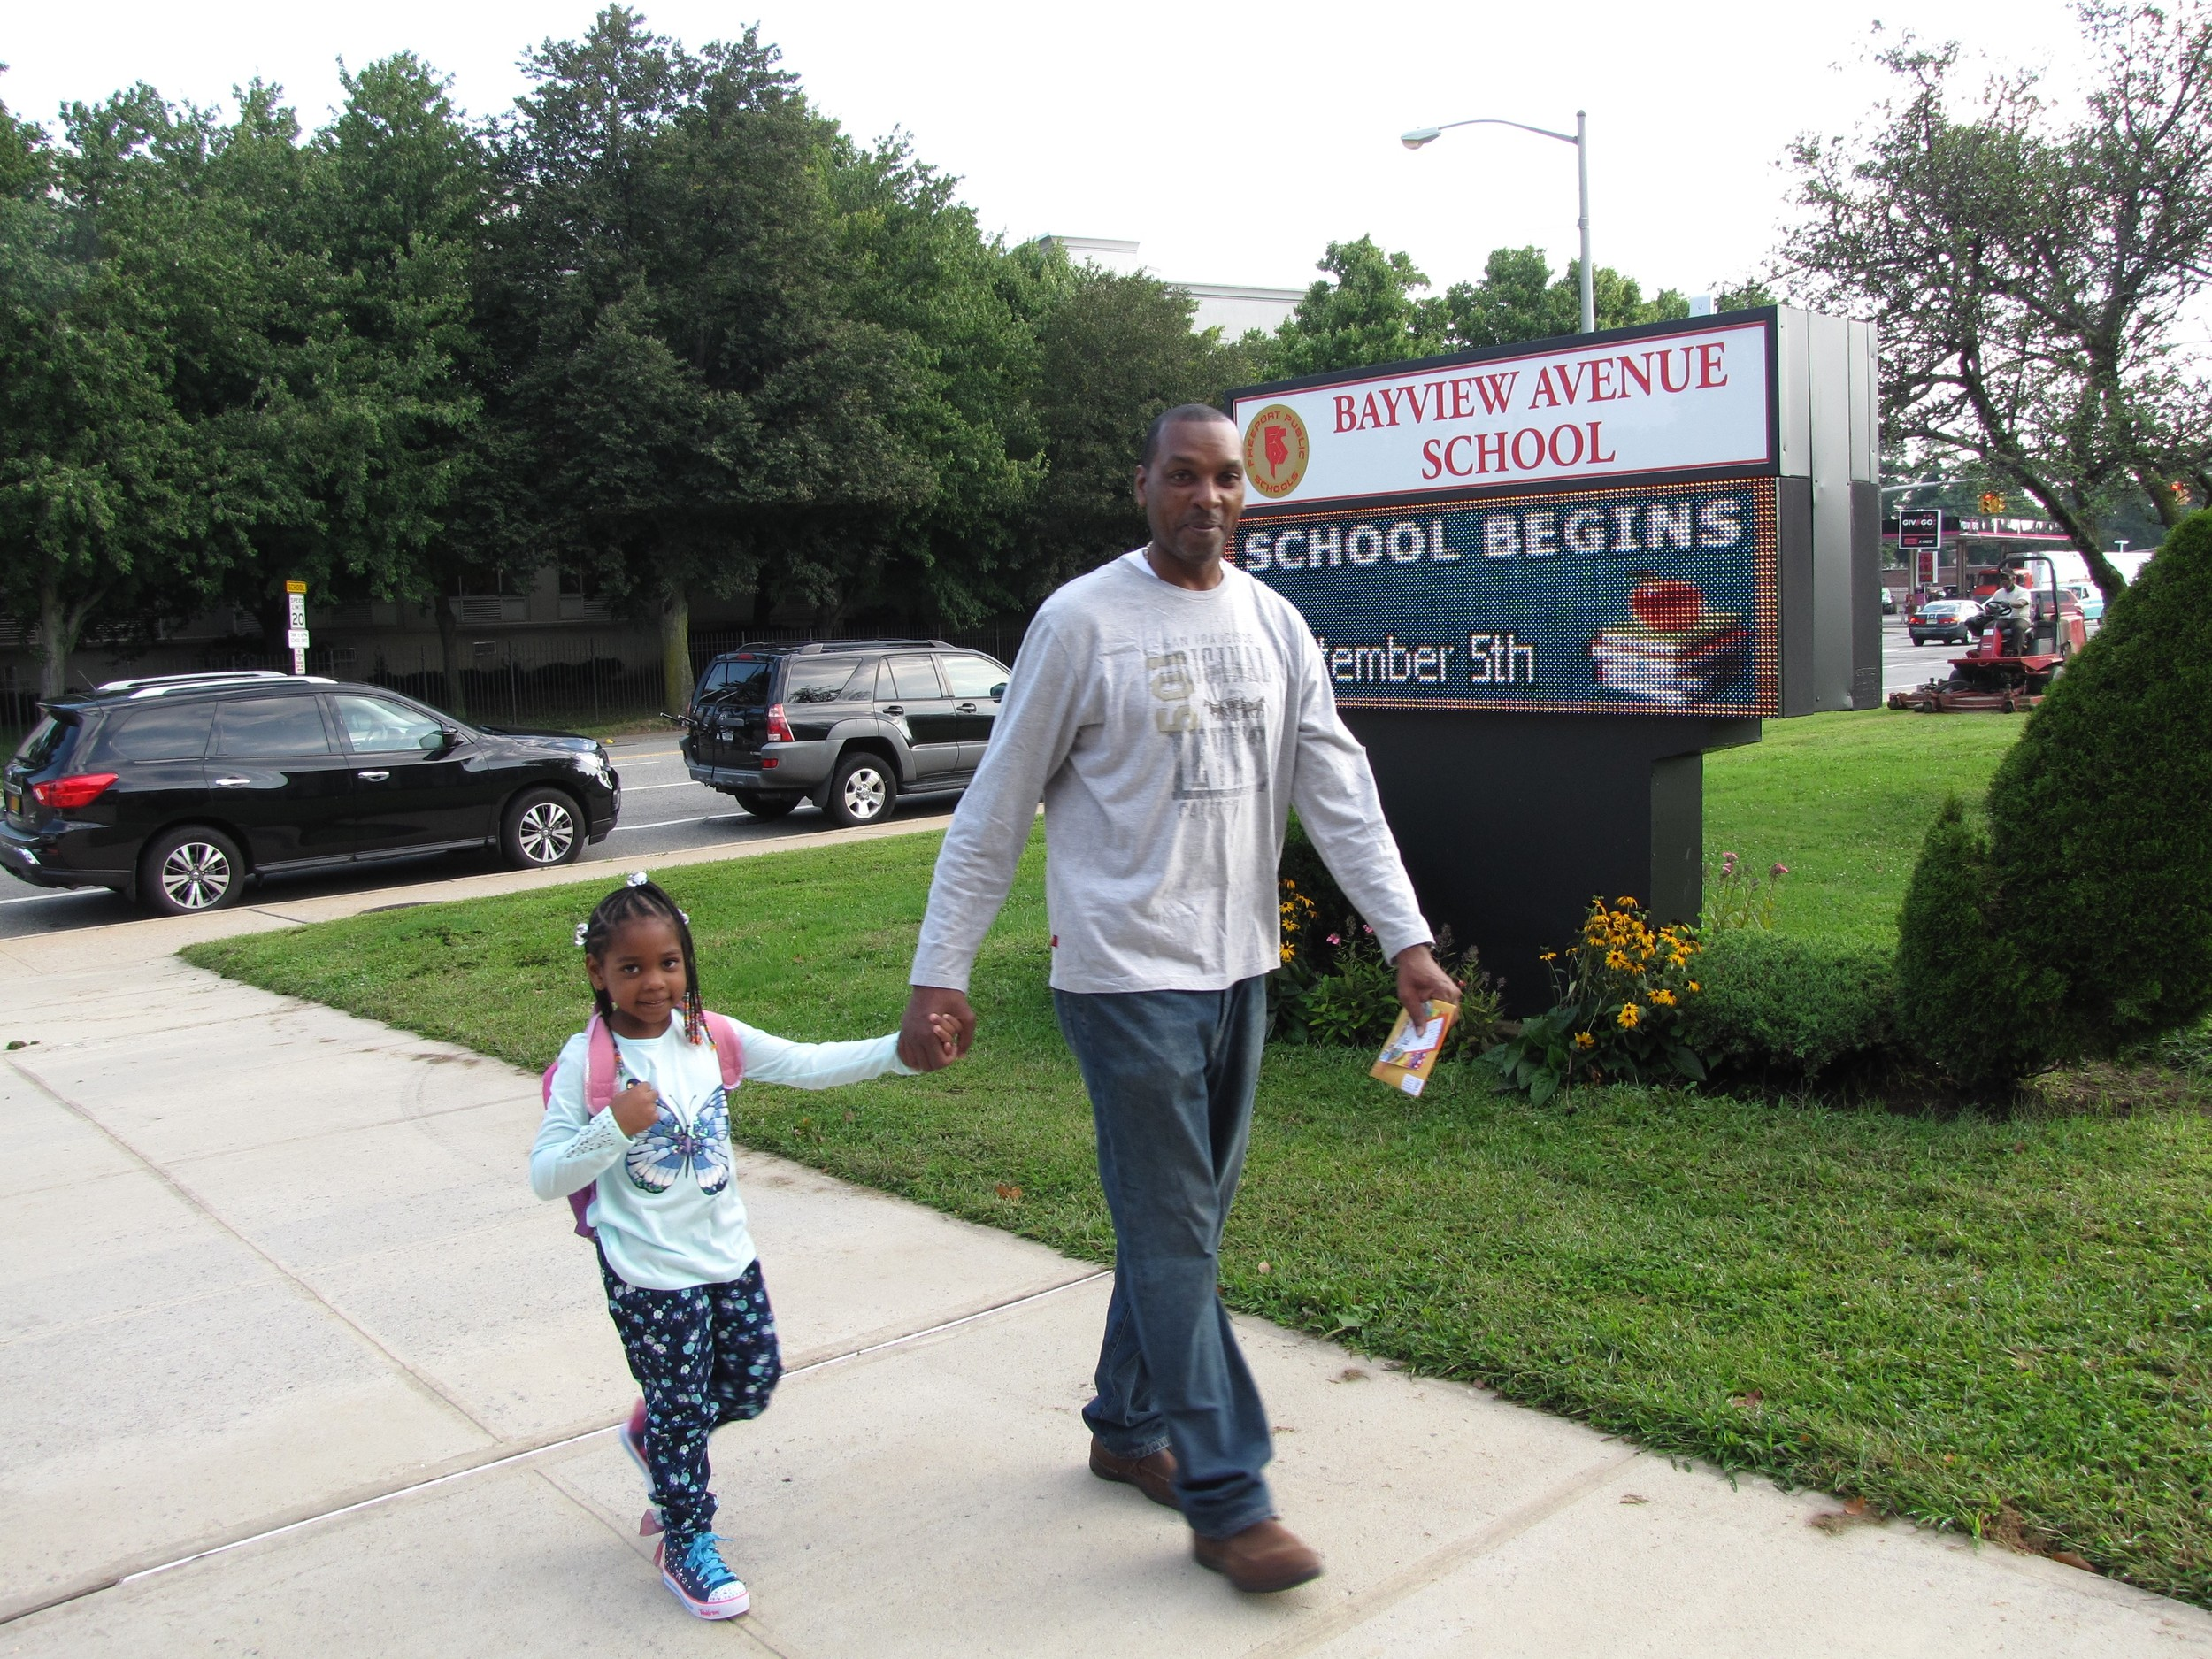 Freeport dad Kevin Curry walked his daughter Jessica to her first day of kindergarten at Bayview Avenue School.